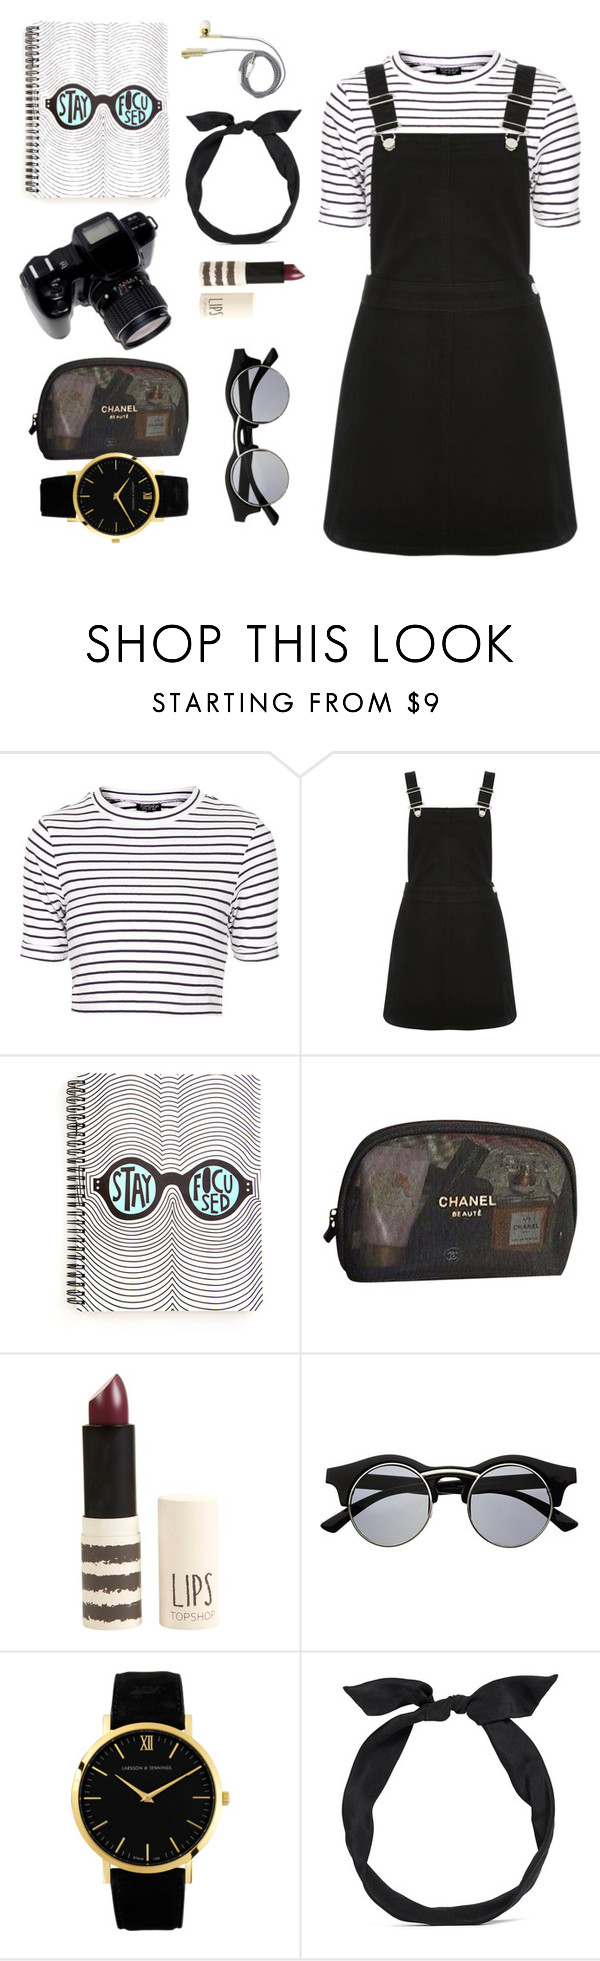 """""""I write stories with tradegies."""" by sophie-fogelmanis ❤ liked on Polyvore featuring Topshop, Oasis, Chanel, Retrò, Larsson & Jennings and yunotme"""